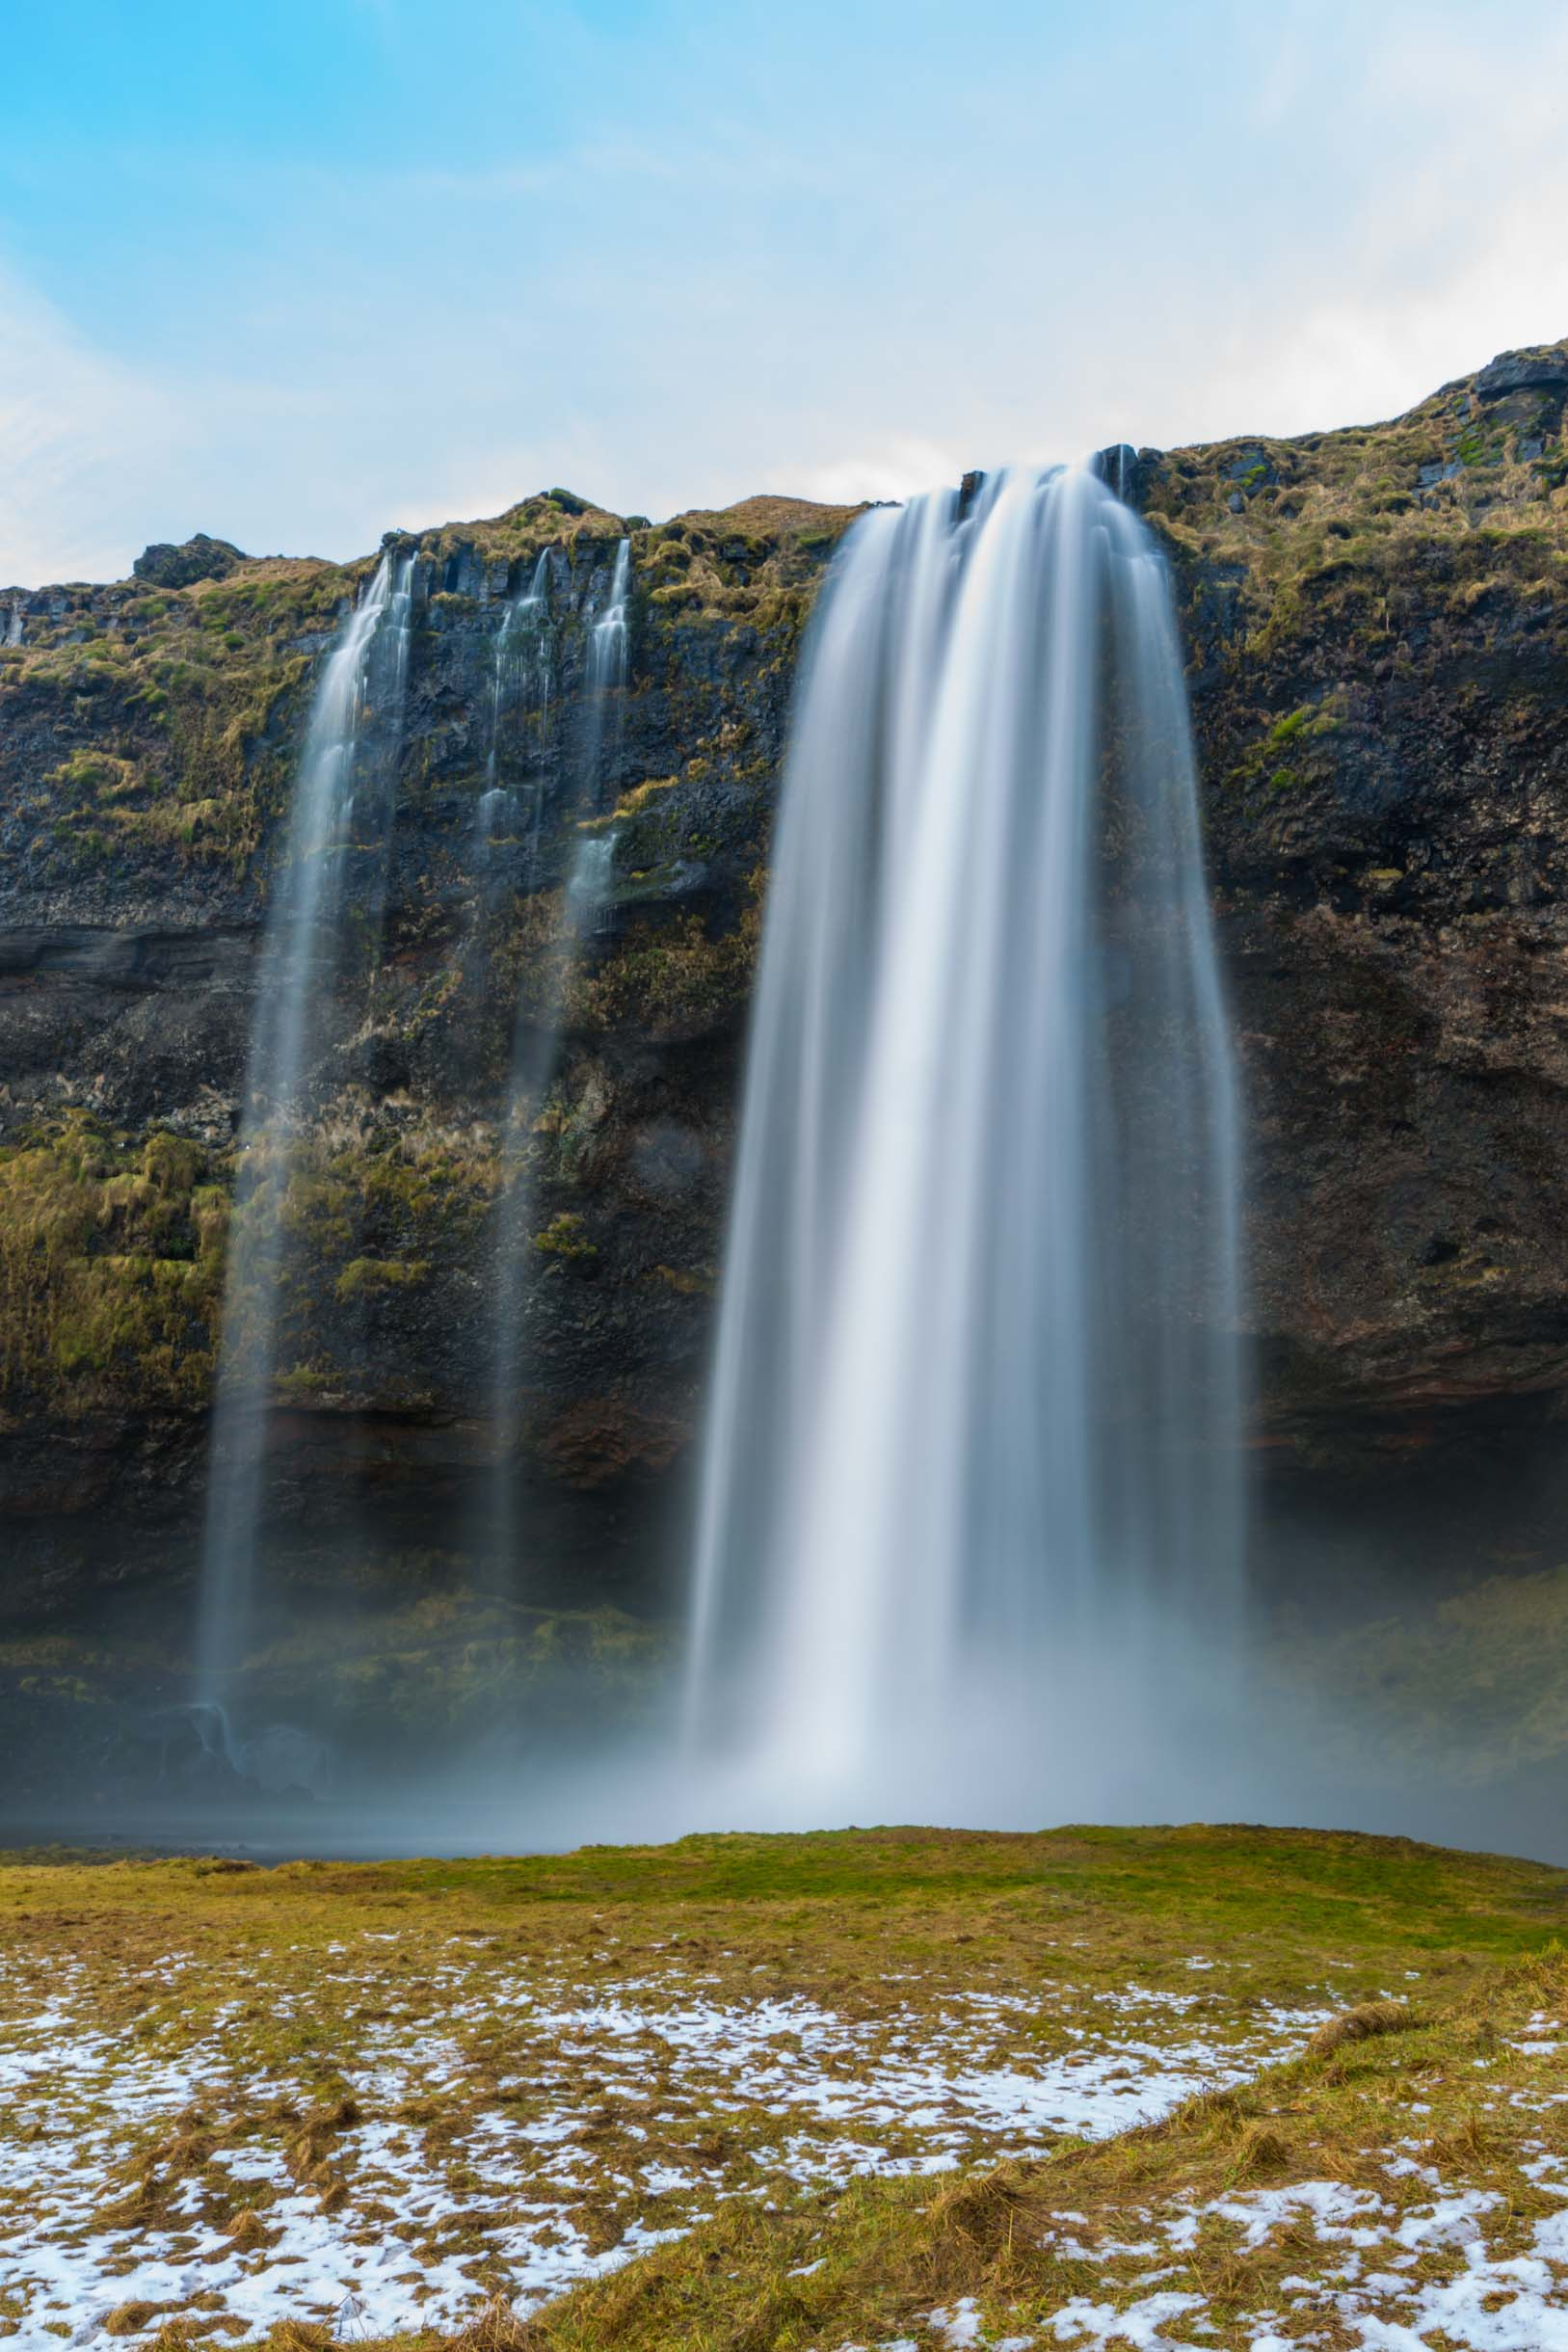 A picture of seljalandsfoss while exploring the Southern Iceland Waterfalls